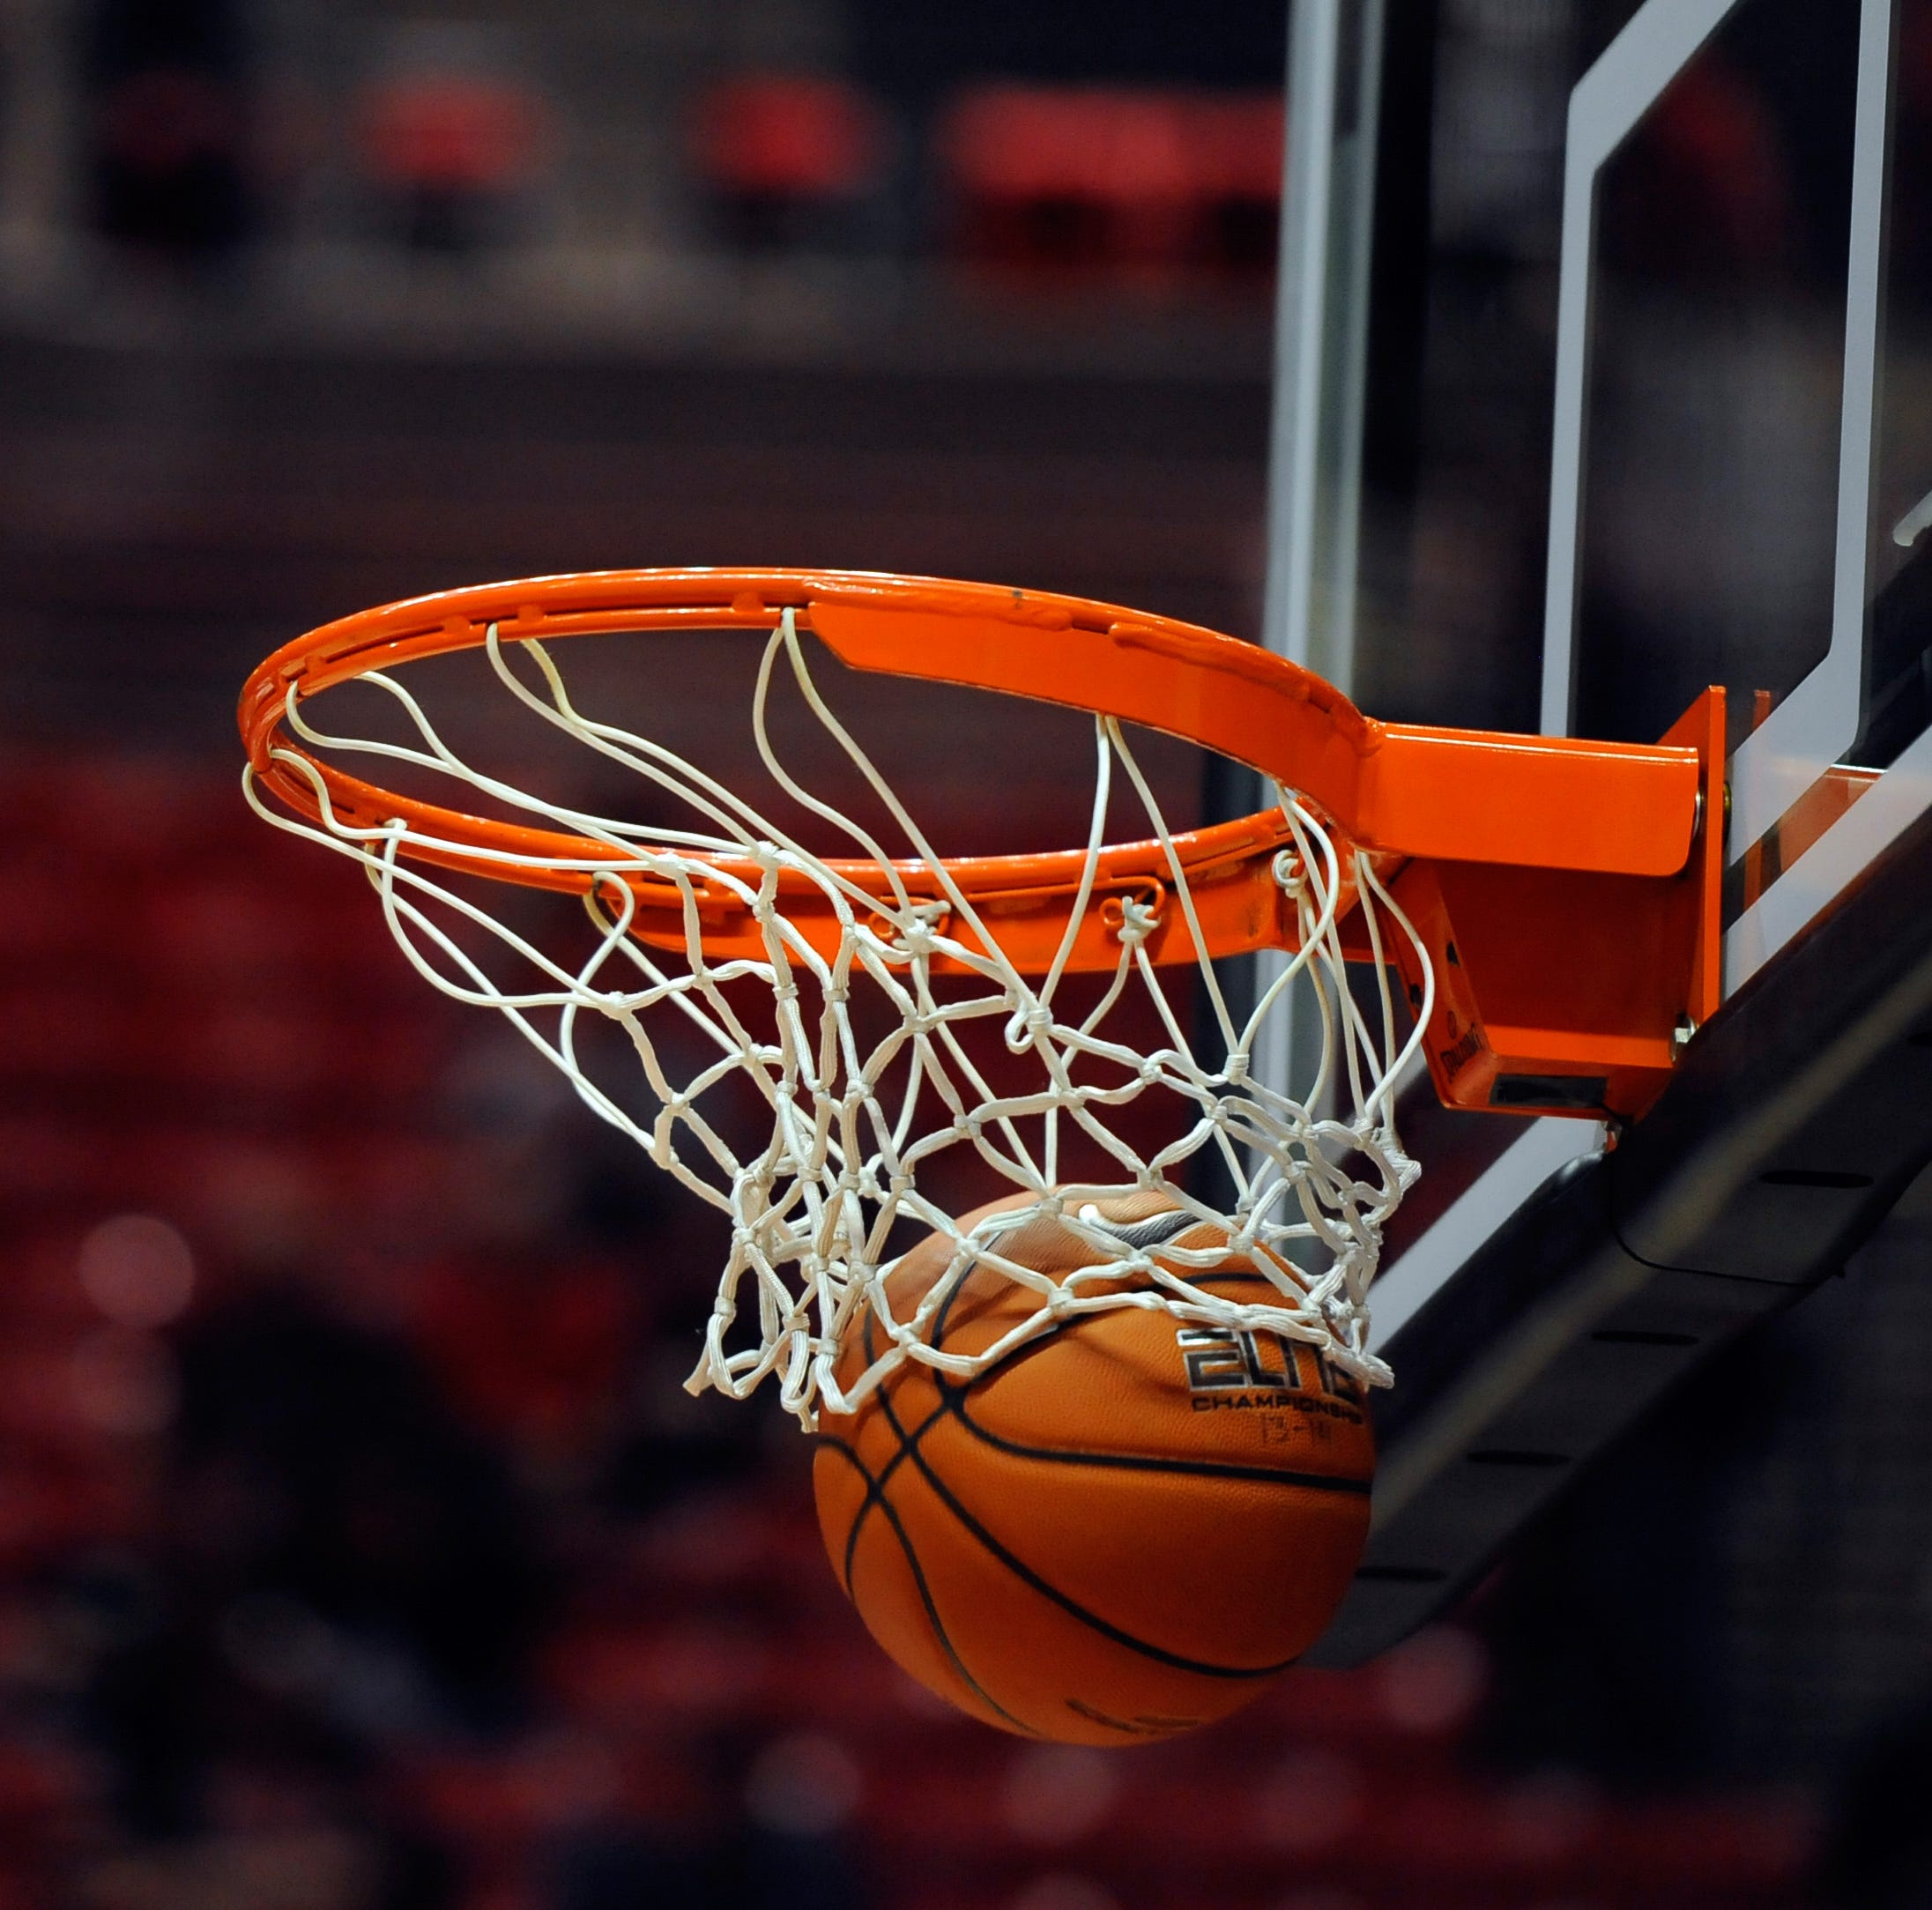 Scores from Tuesday's SC high school basketball playoff games